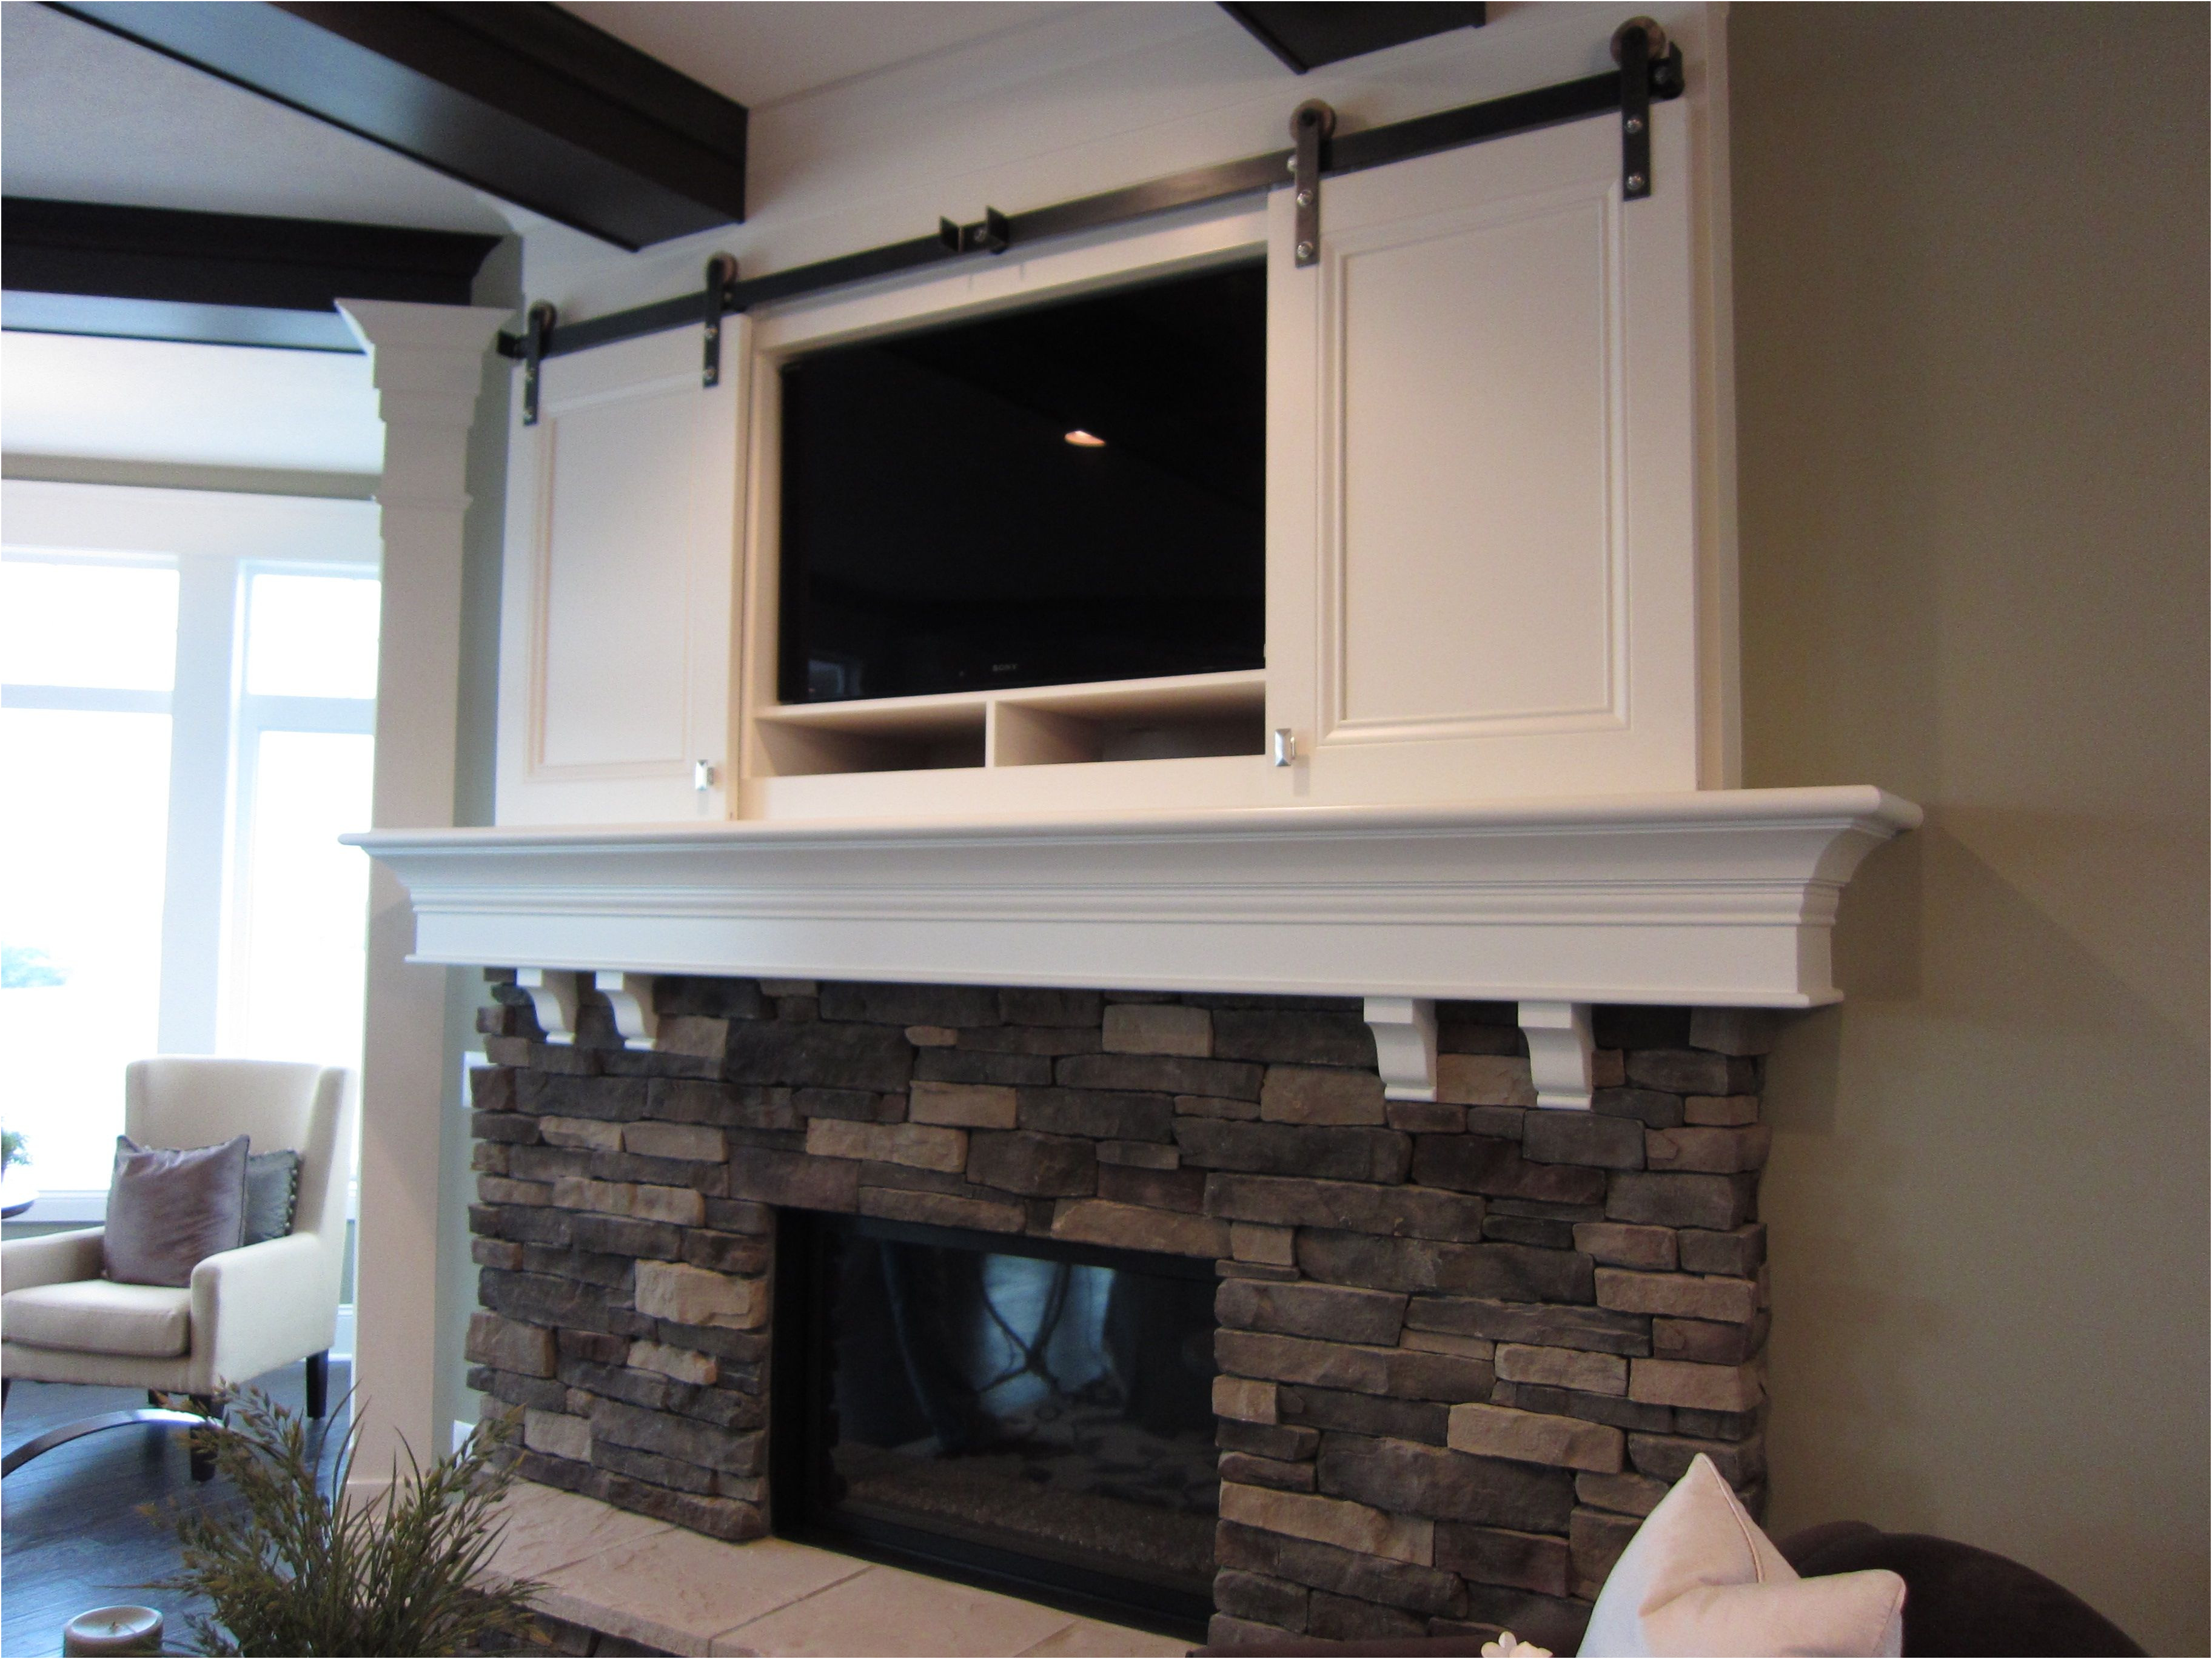 Ideas for Tv Above Fireplace Best Of Fireplace Tv Mantel Ideas Best 25 Tv Above Fireplace Ideas